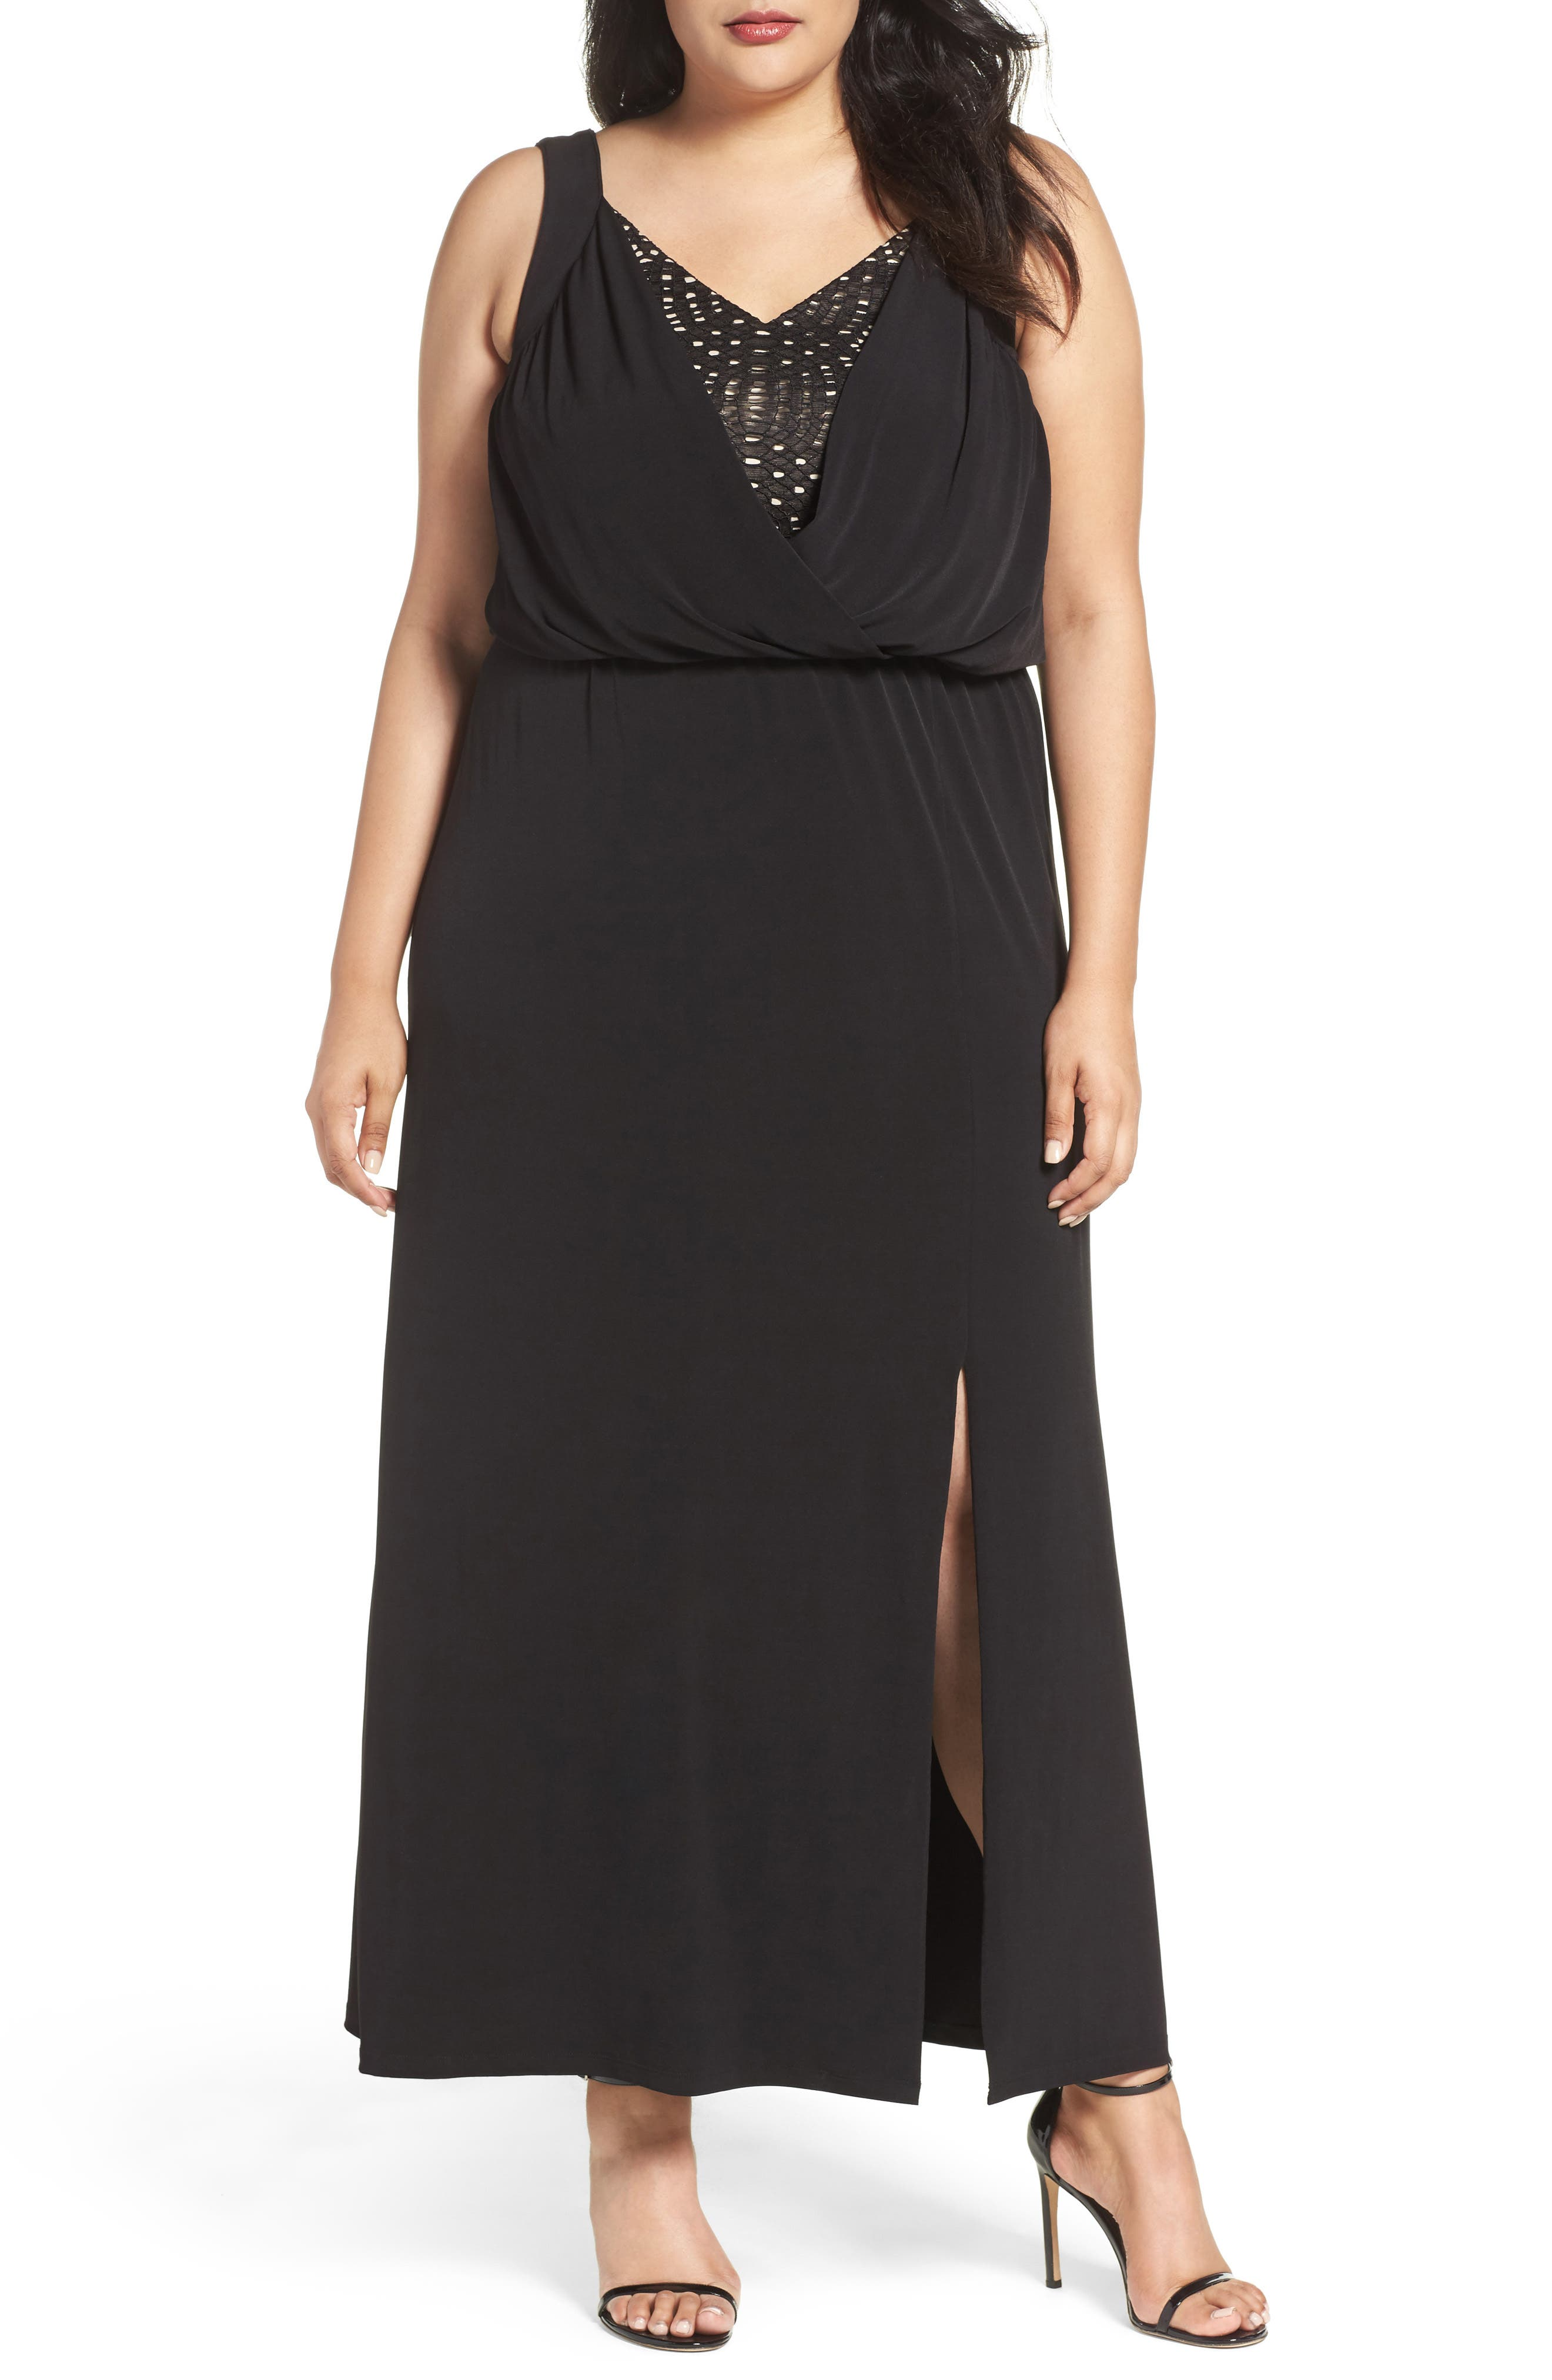 Main Image - London Times Contrast Underlay Jersey Maxi Dress (Plus Size)